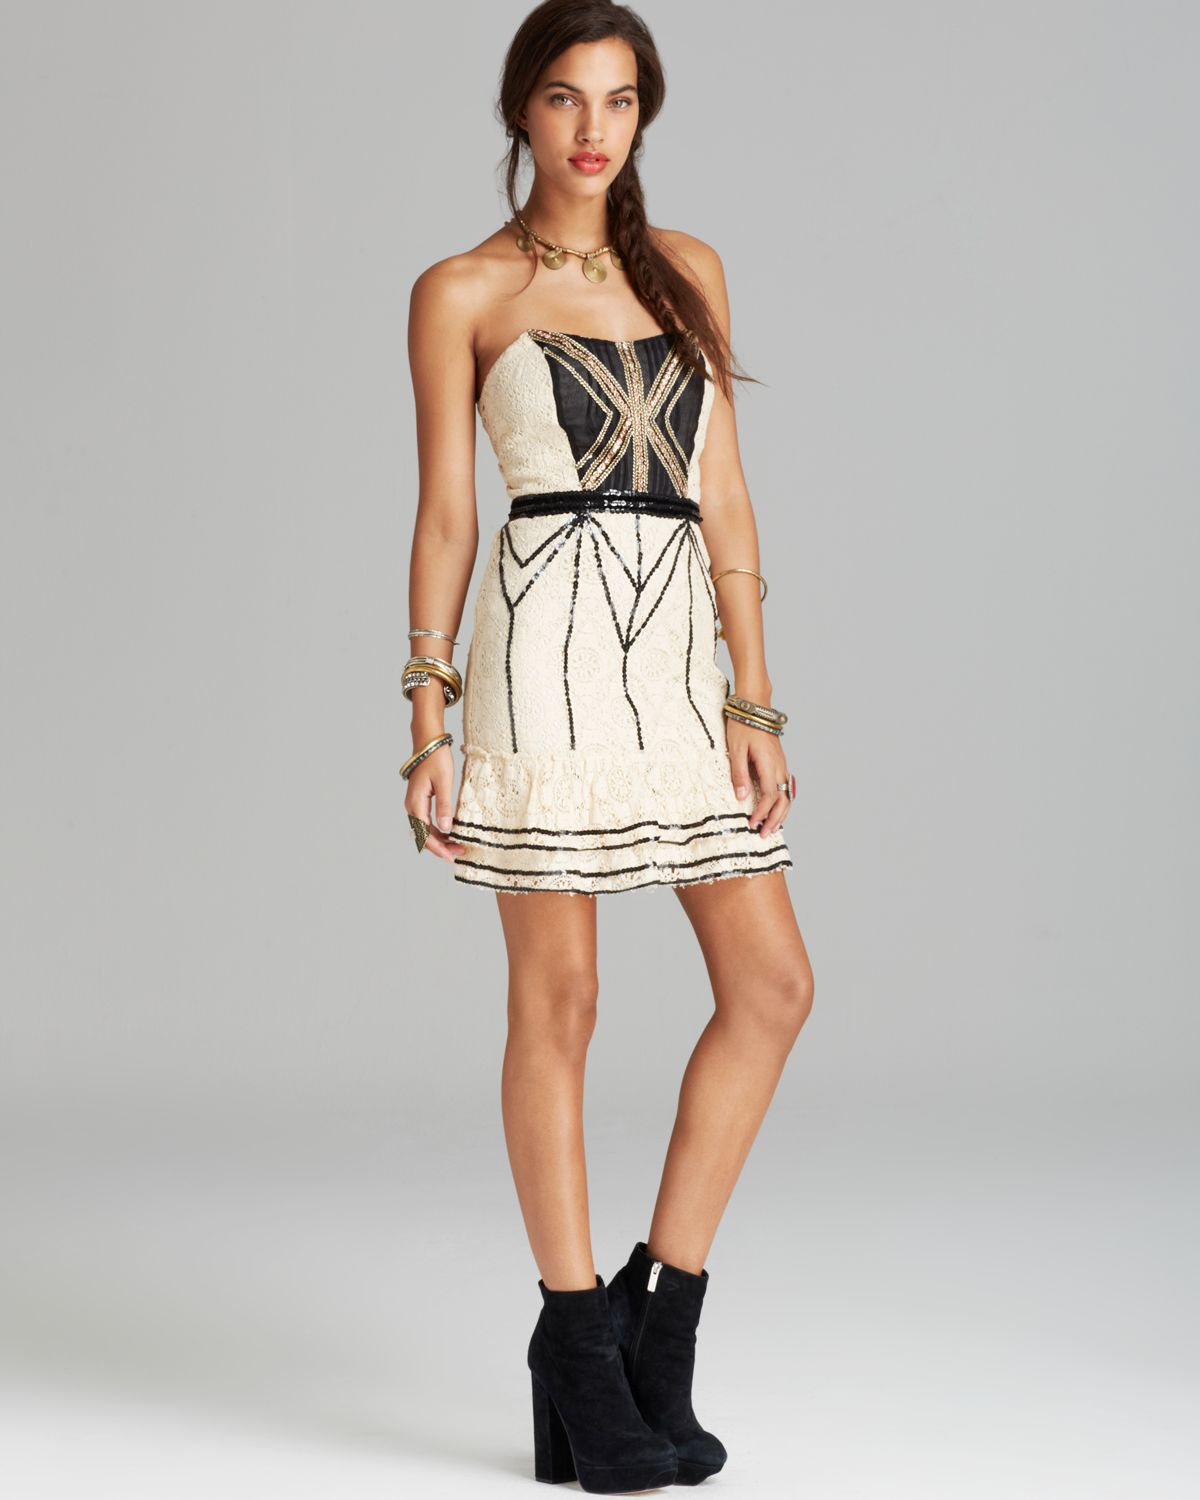 Free People Mini Dress - Vintage Lace Coquette | Bloomingdale's